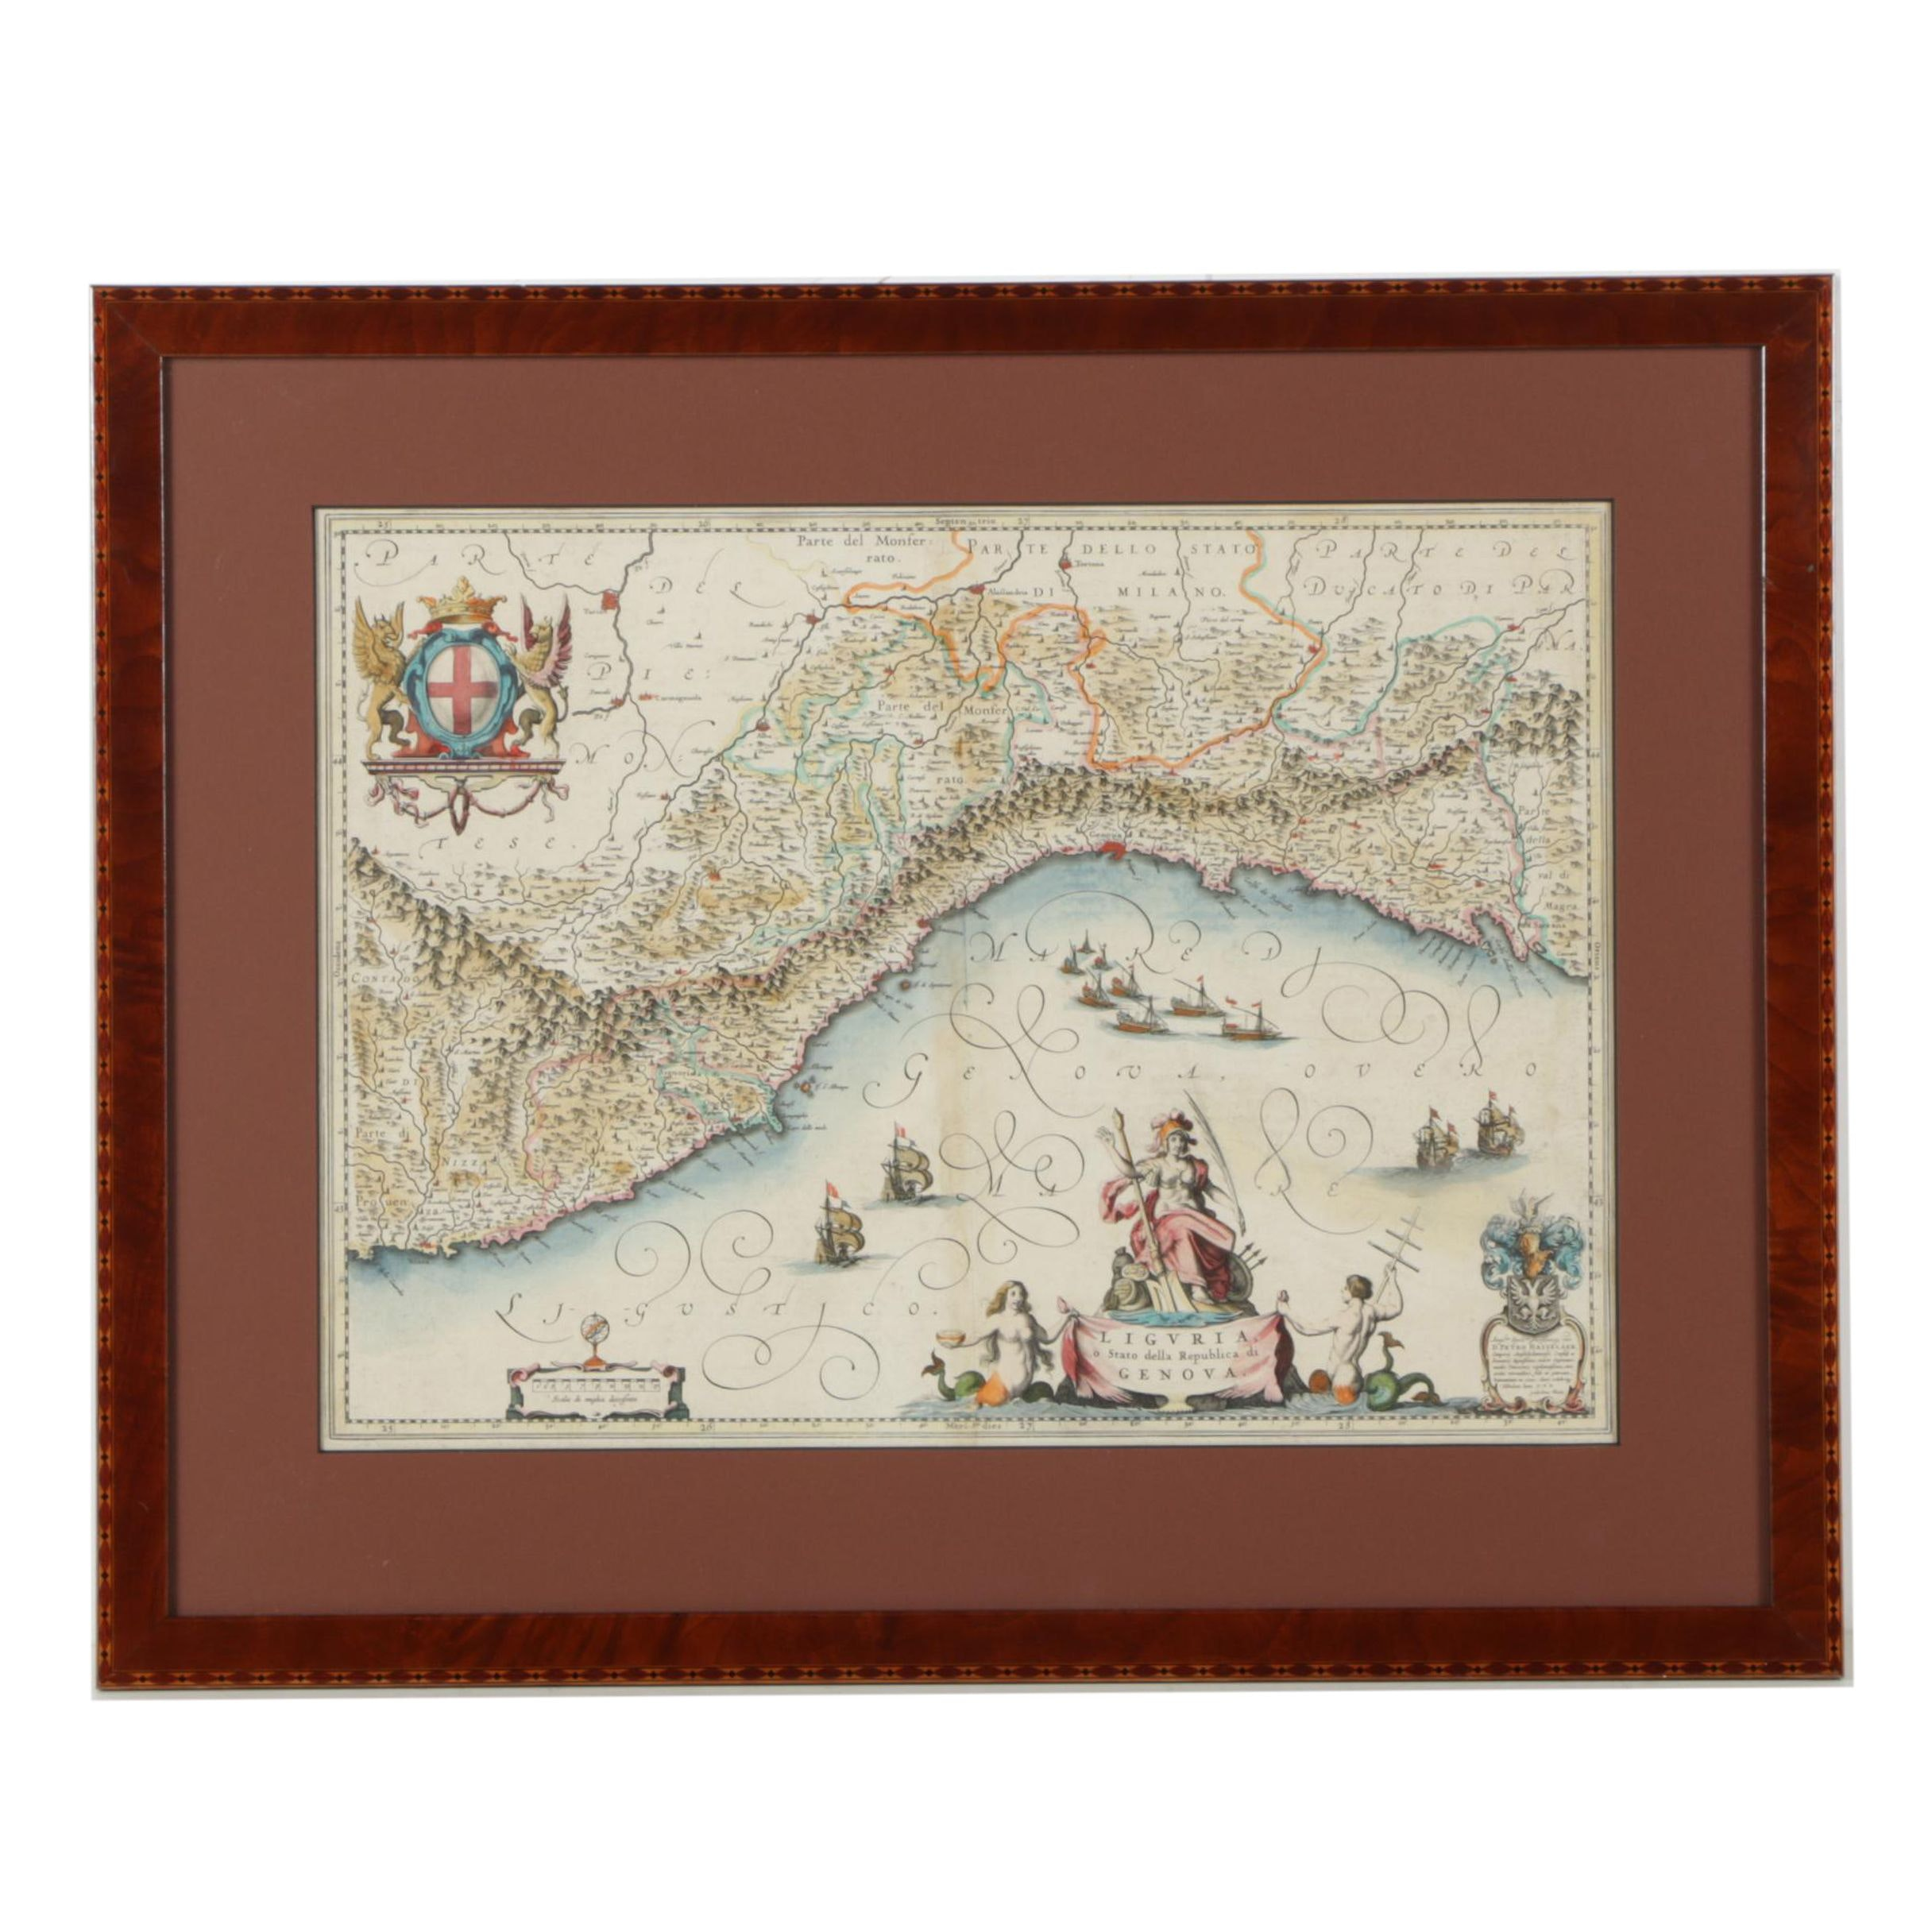 Hand-Colored Engraving After Willem Janszoon Blaeu's Map of Liguria, Italy